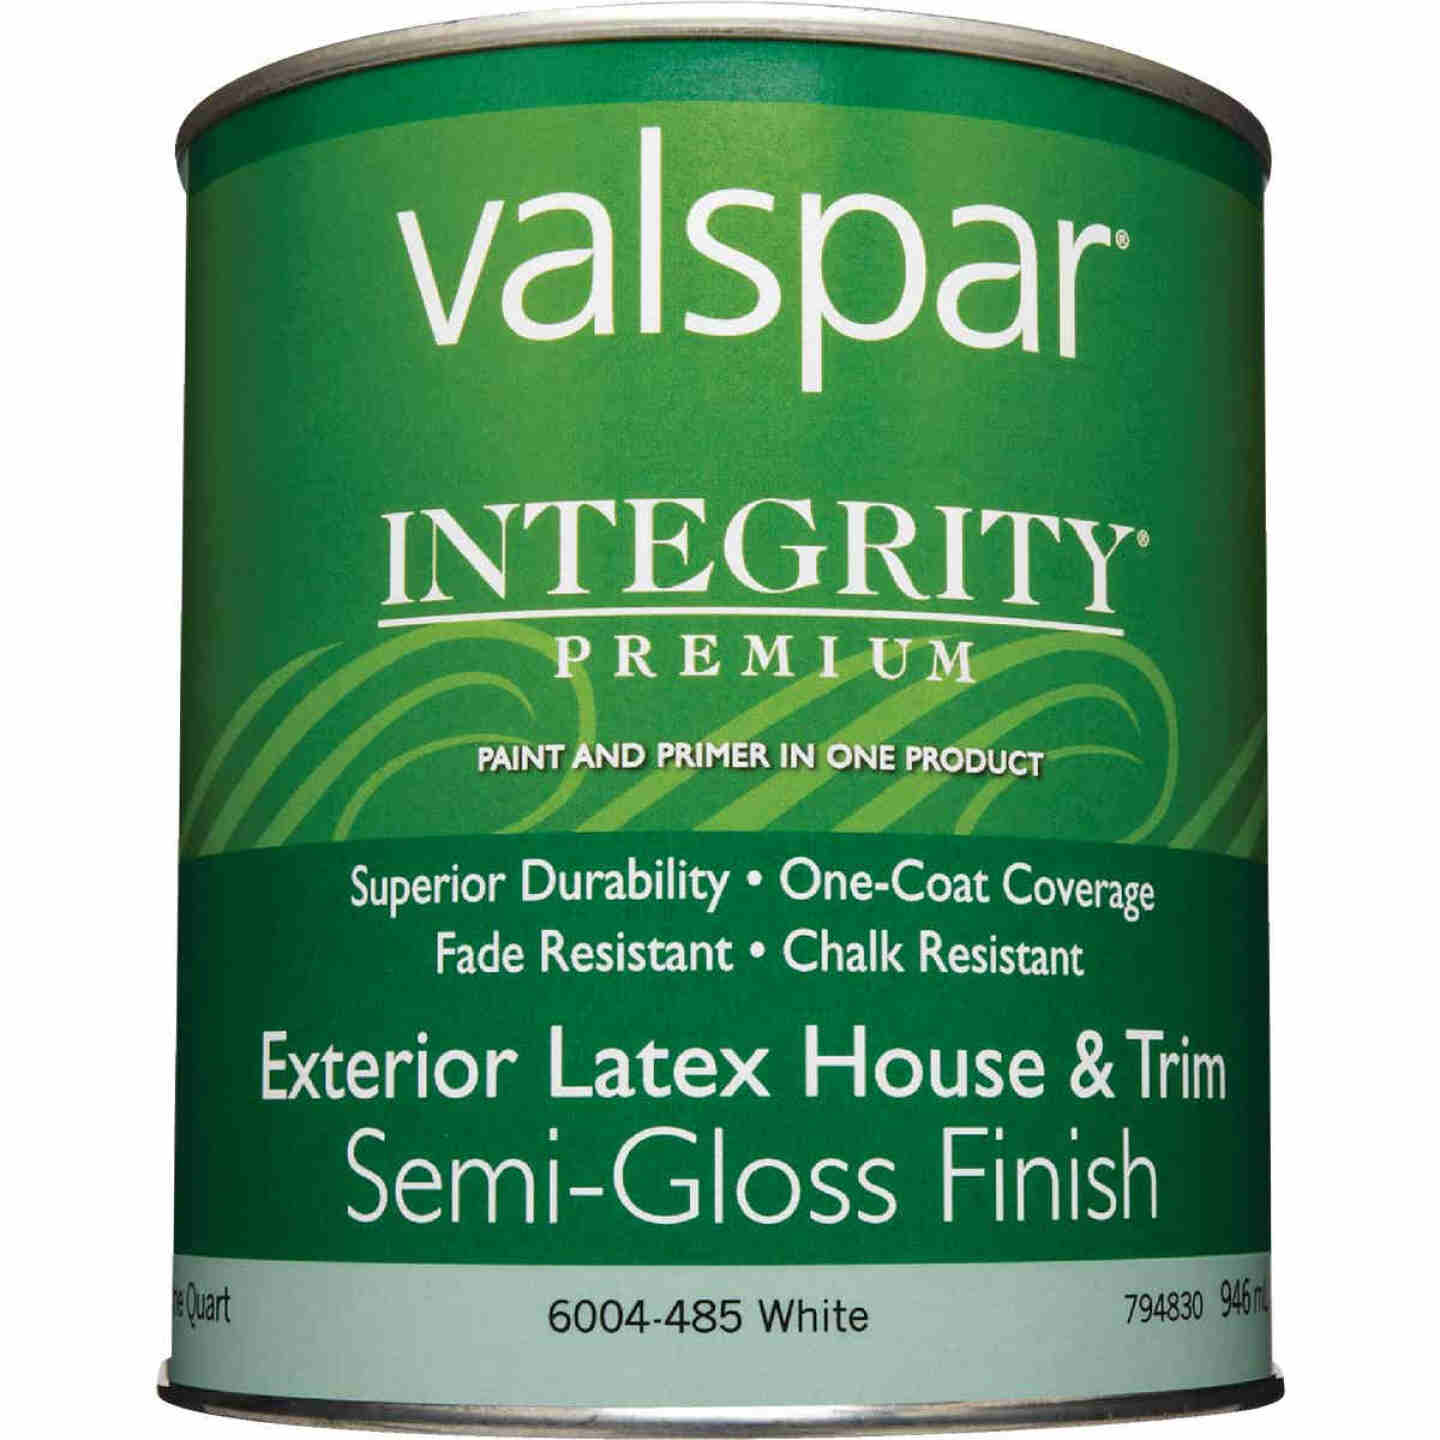 Valspar Integrity Latex Paint And Primer Semi-Gloss Exterior House Paint, White, 1 Qt. Image 2